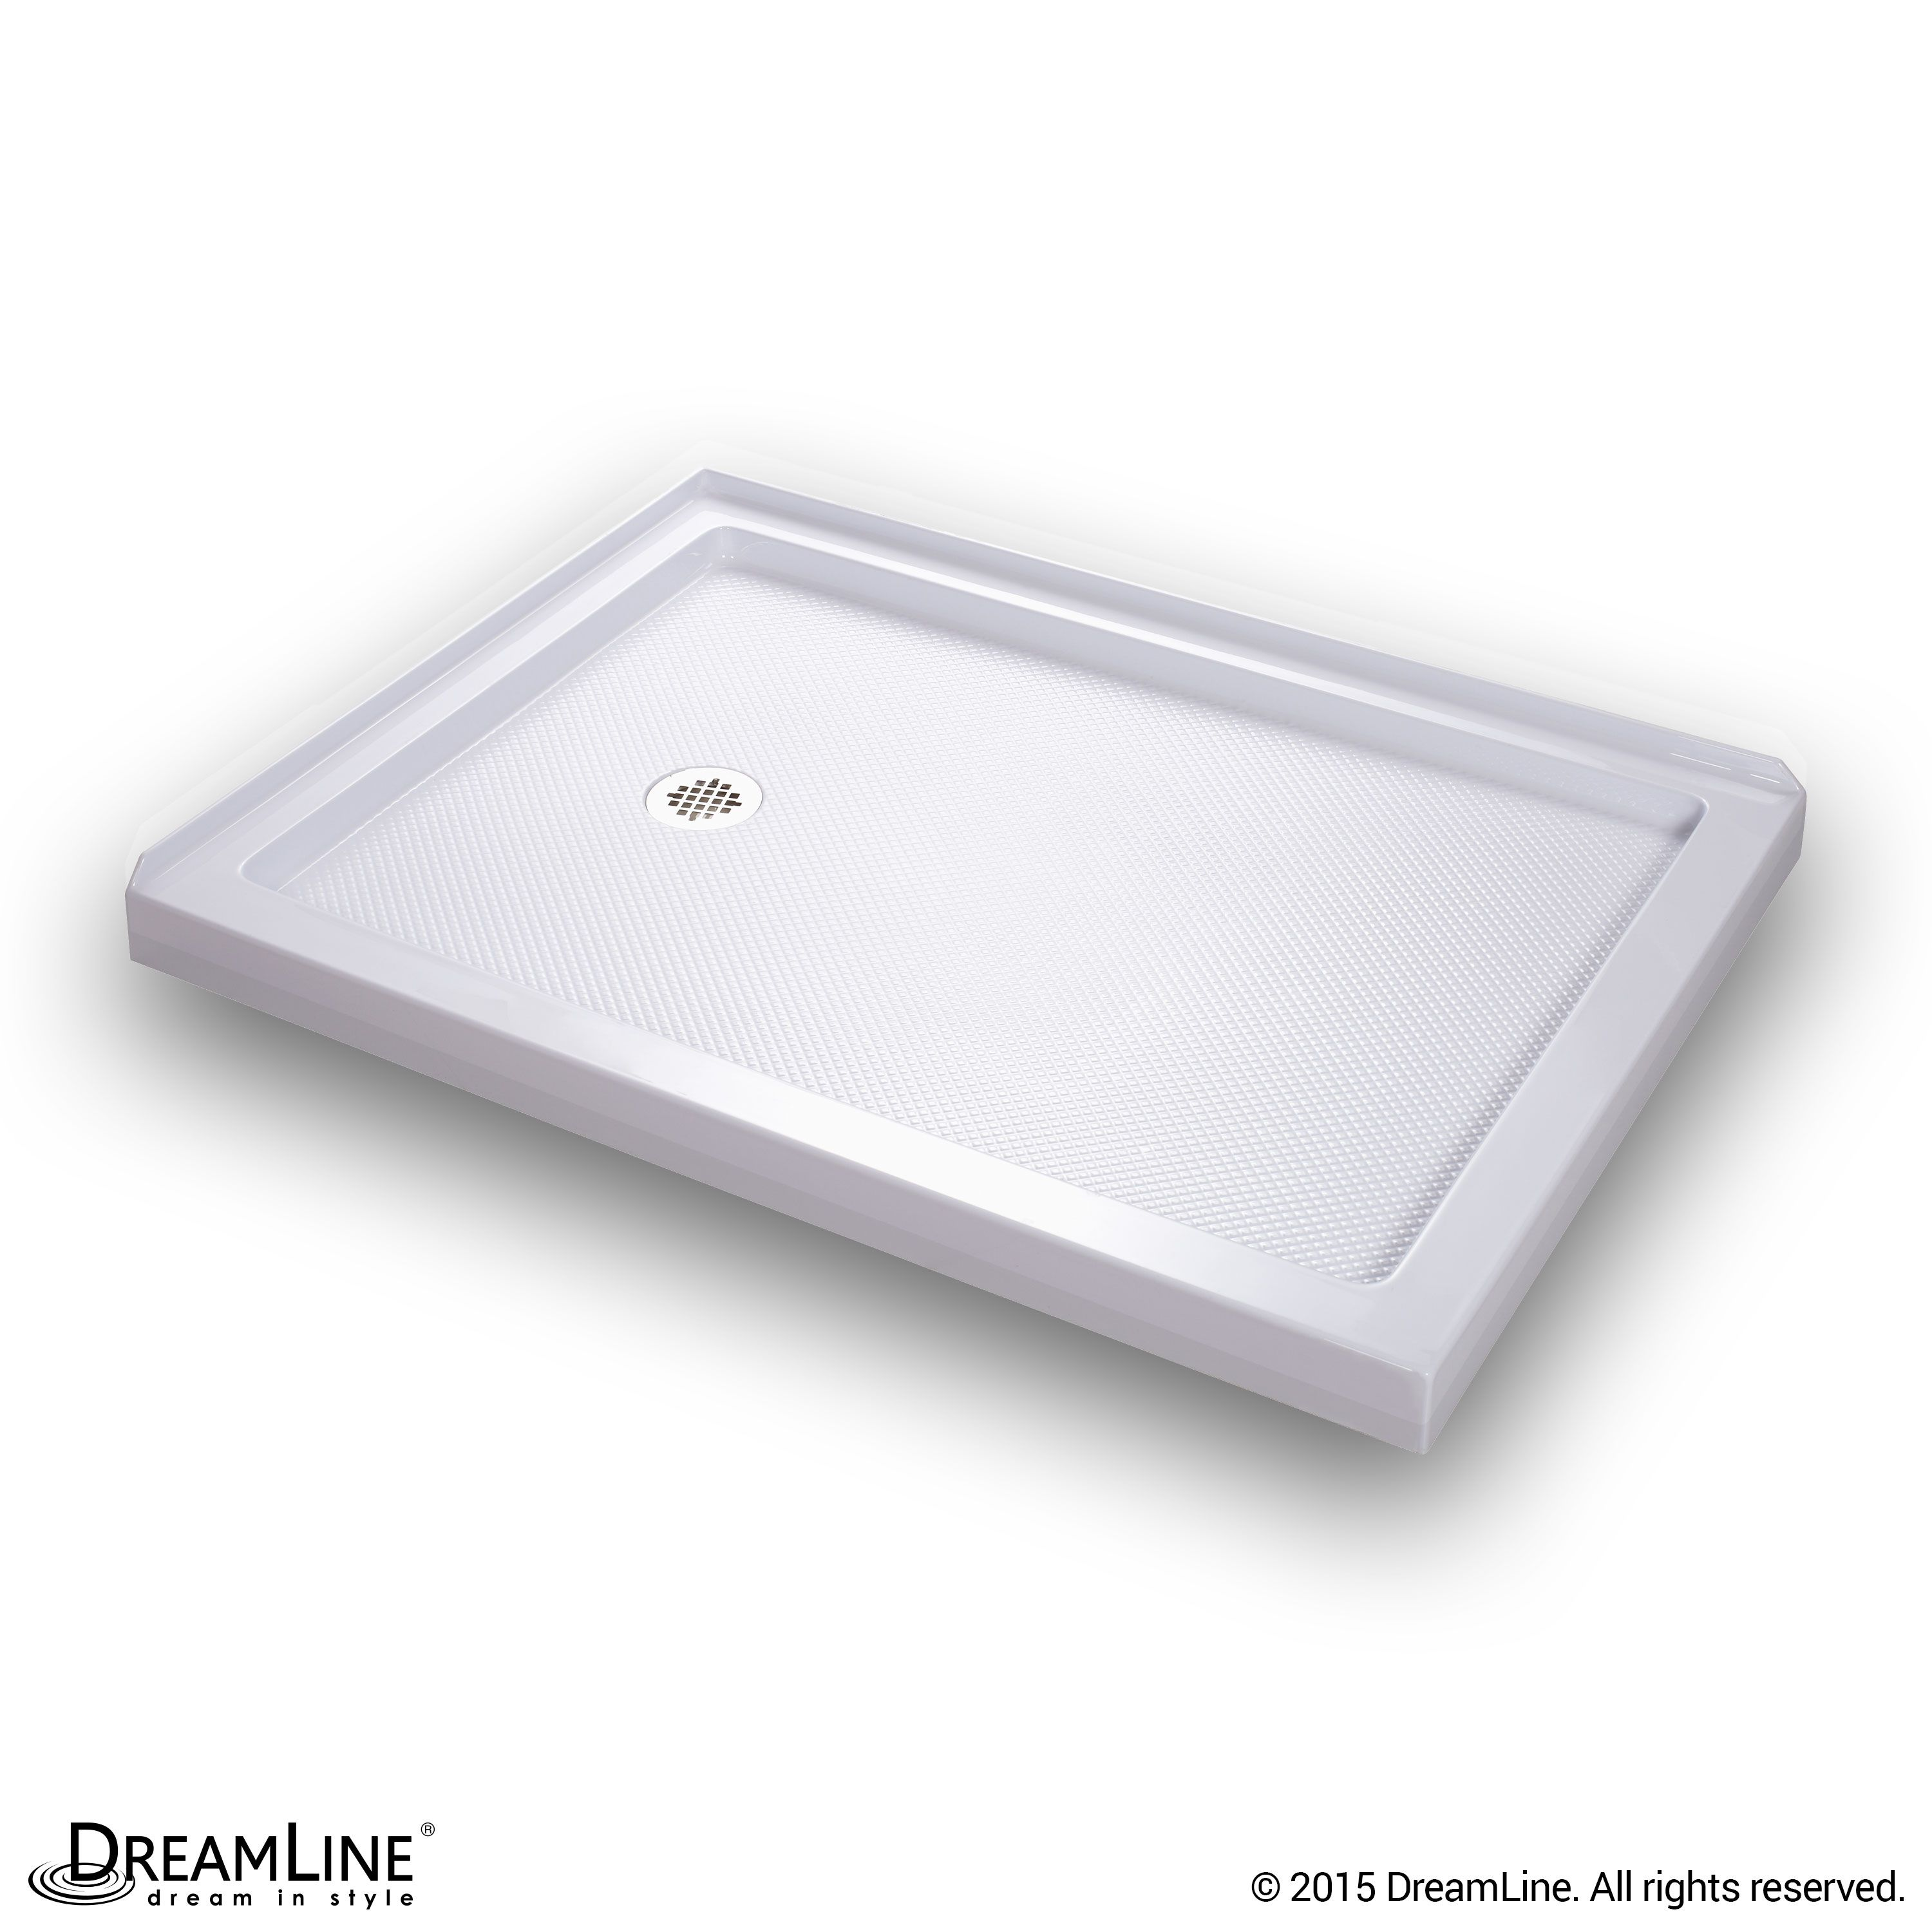 Made Of Attractive High Gloss Acrylic Abs Materials The Bases Are Fiberglass Reinforced For Durability Eac Dreamline Shower Base Dreamline Shower Shower Base